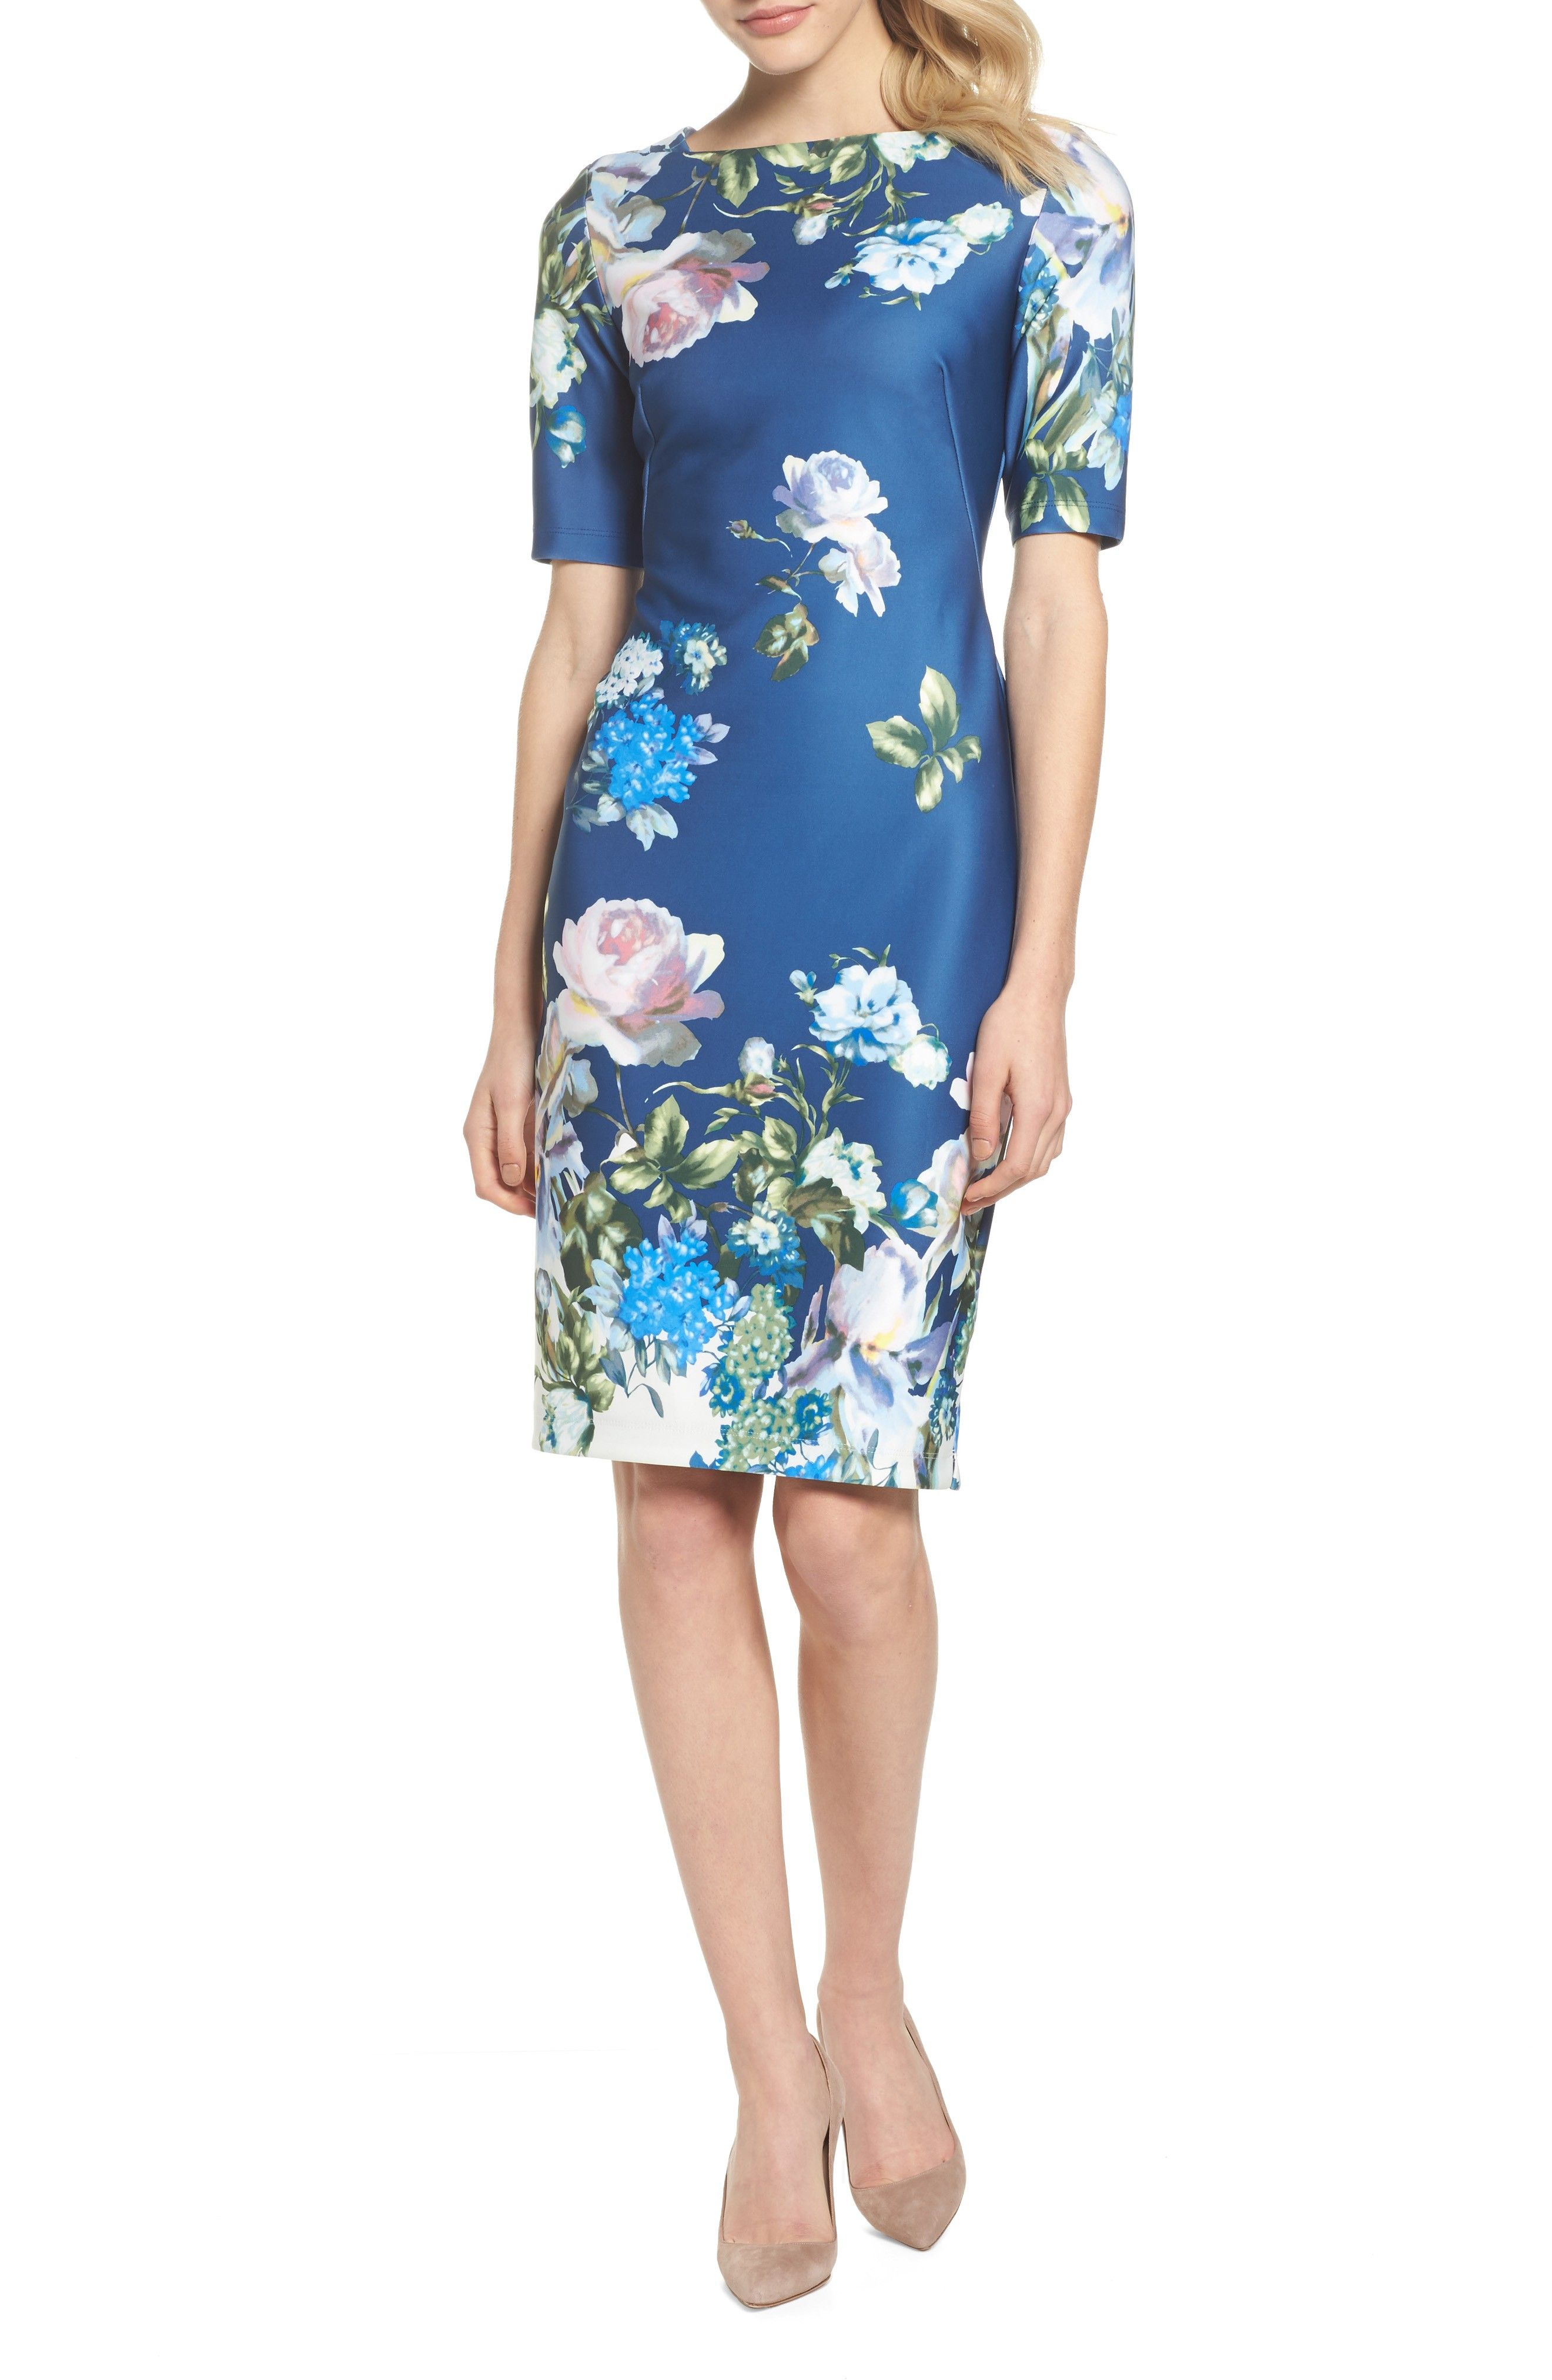 Pretty blue floral dress for #spring wedding guests #ad | Wedding ...